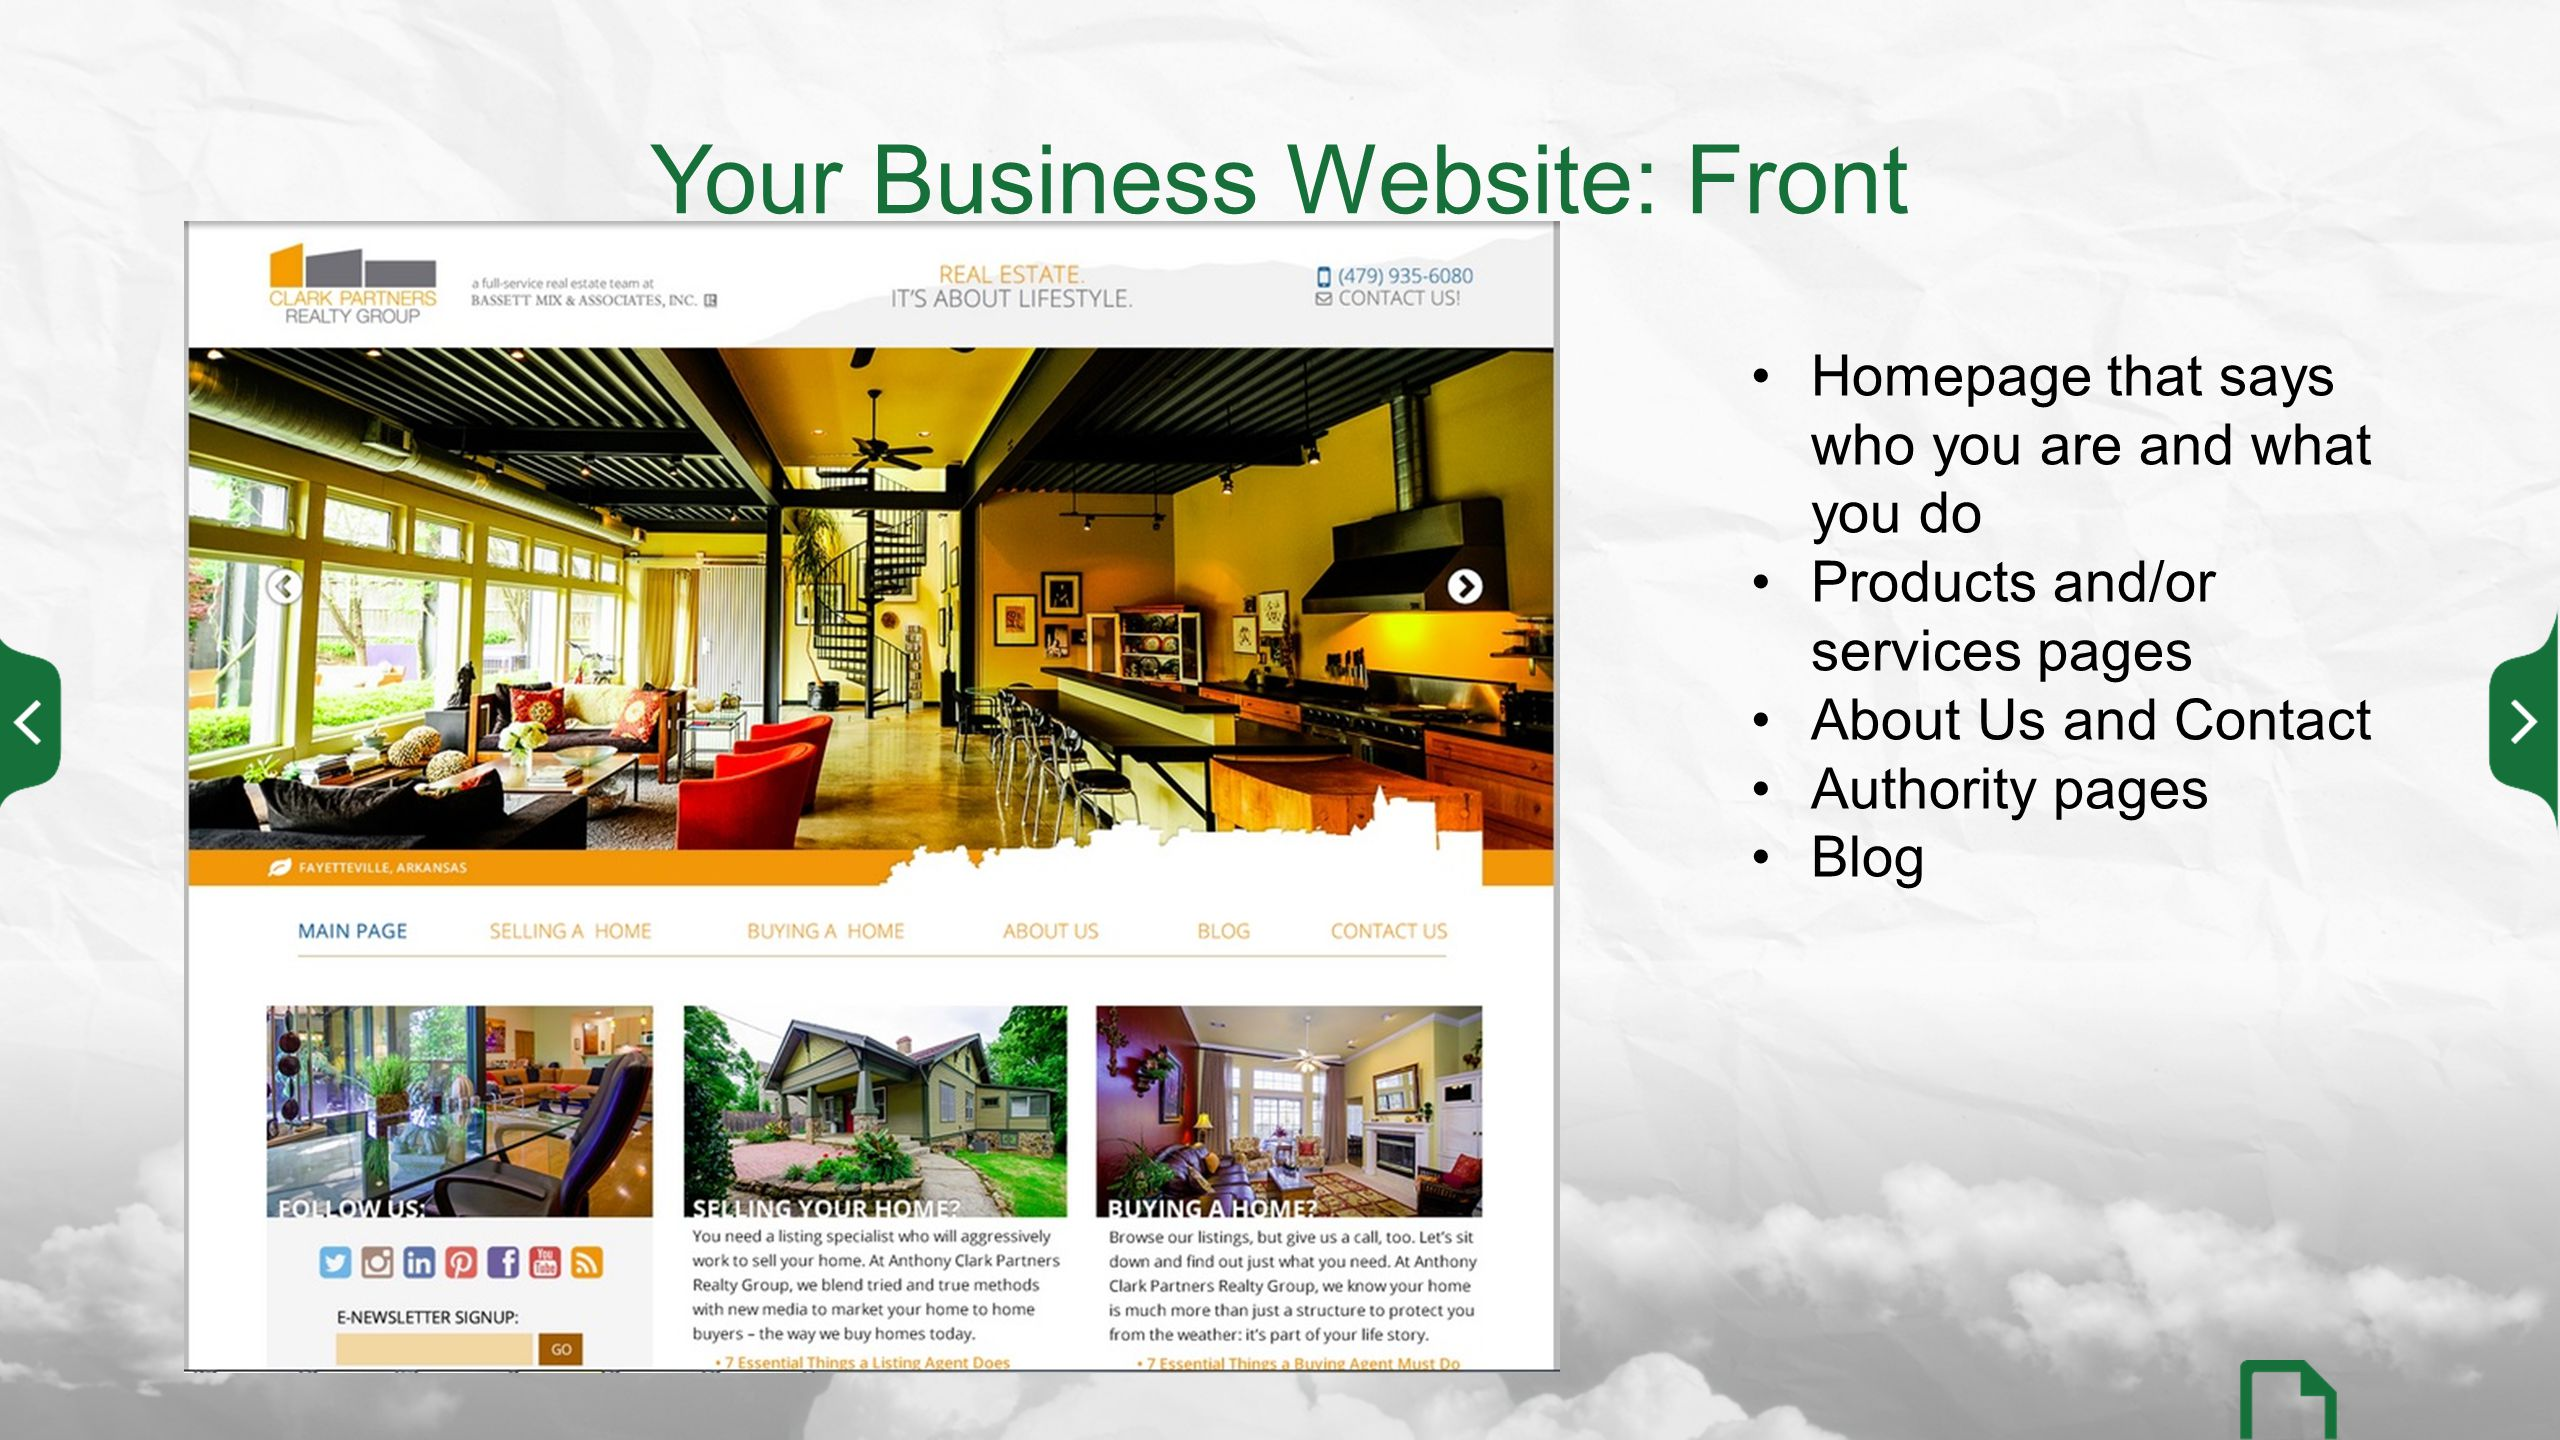 Your Business Website: Front Homepage that says who you are and what you do Products and/or services pages About Us and Contact Authority pages Blog